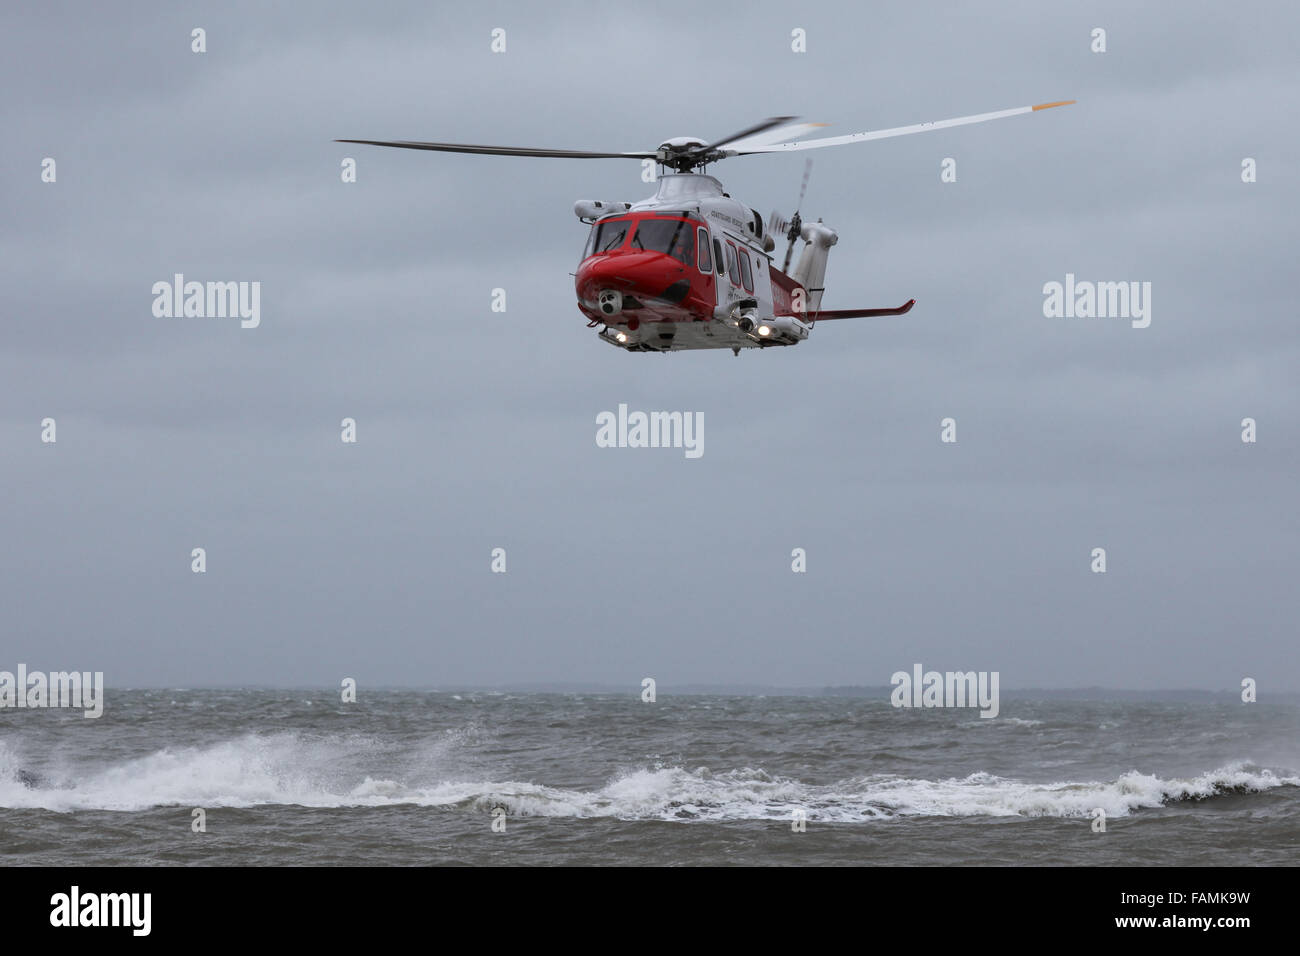 HM Coastguard Helicopter pictured during a rescue training exercise on a stormy day in the Solent - Stock Image